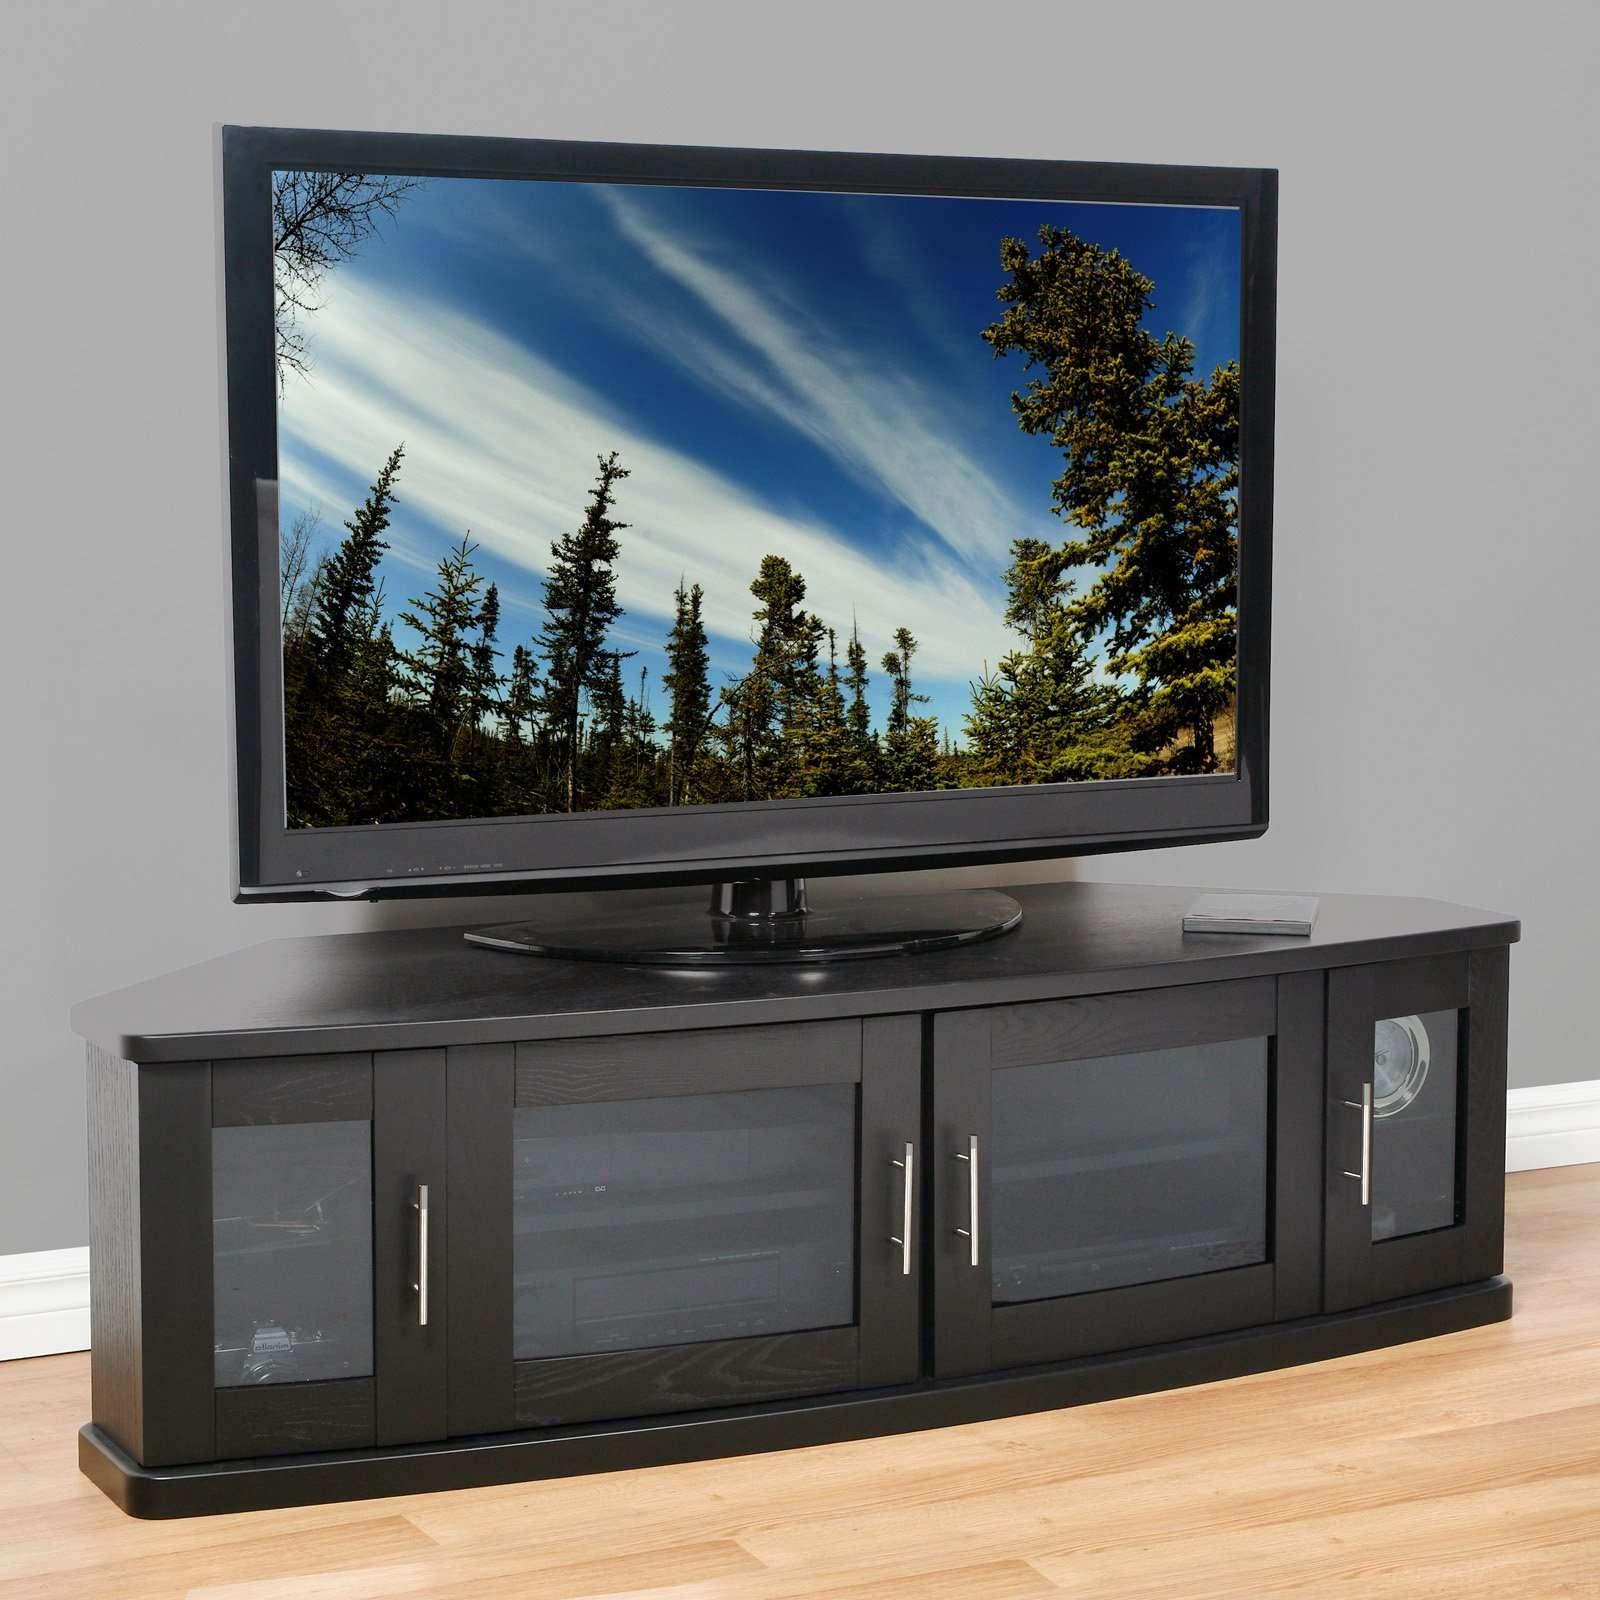 Large Corner Tv Cabinet With 4 Glass Doors And Silver Handle For Silver Corner Tv Stands (View 2 of 15)